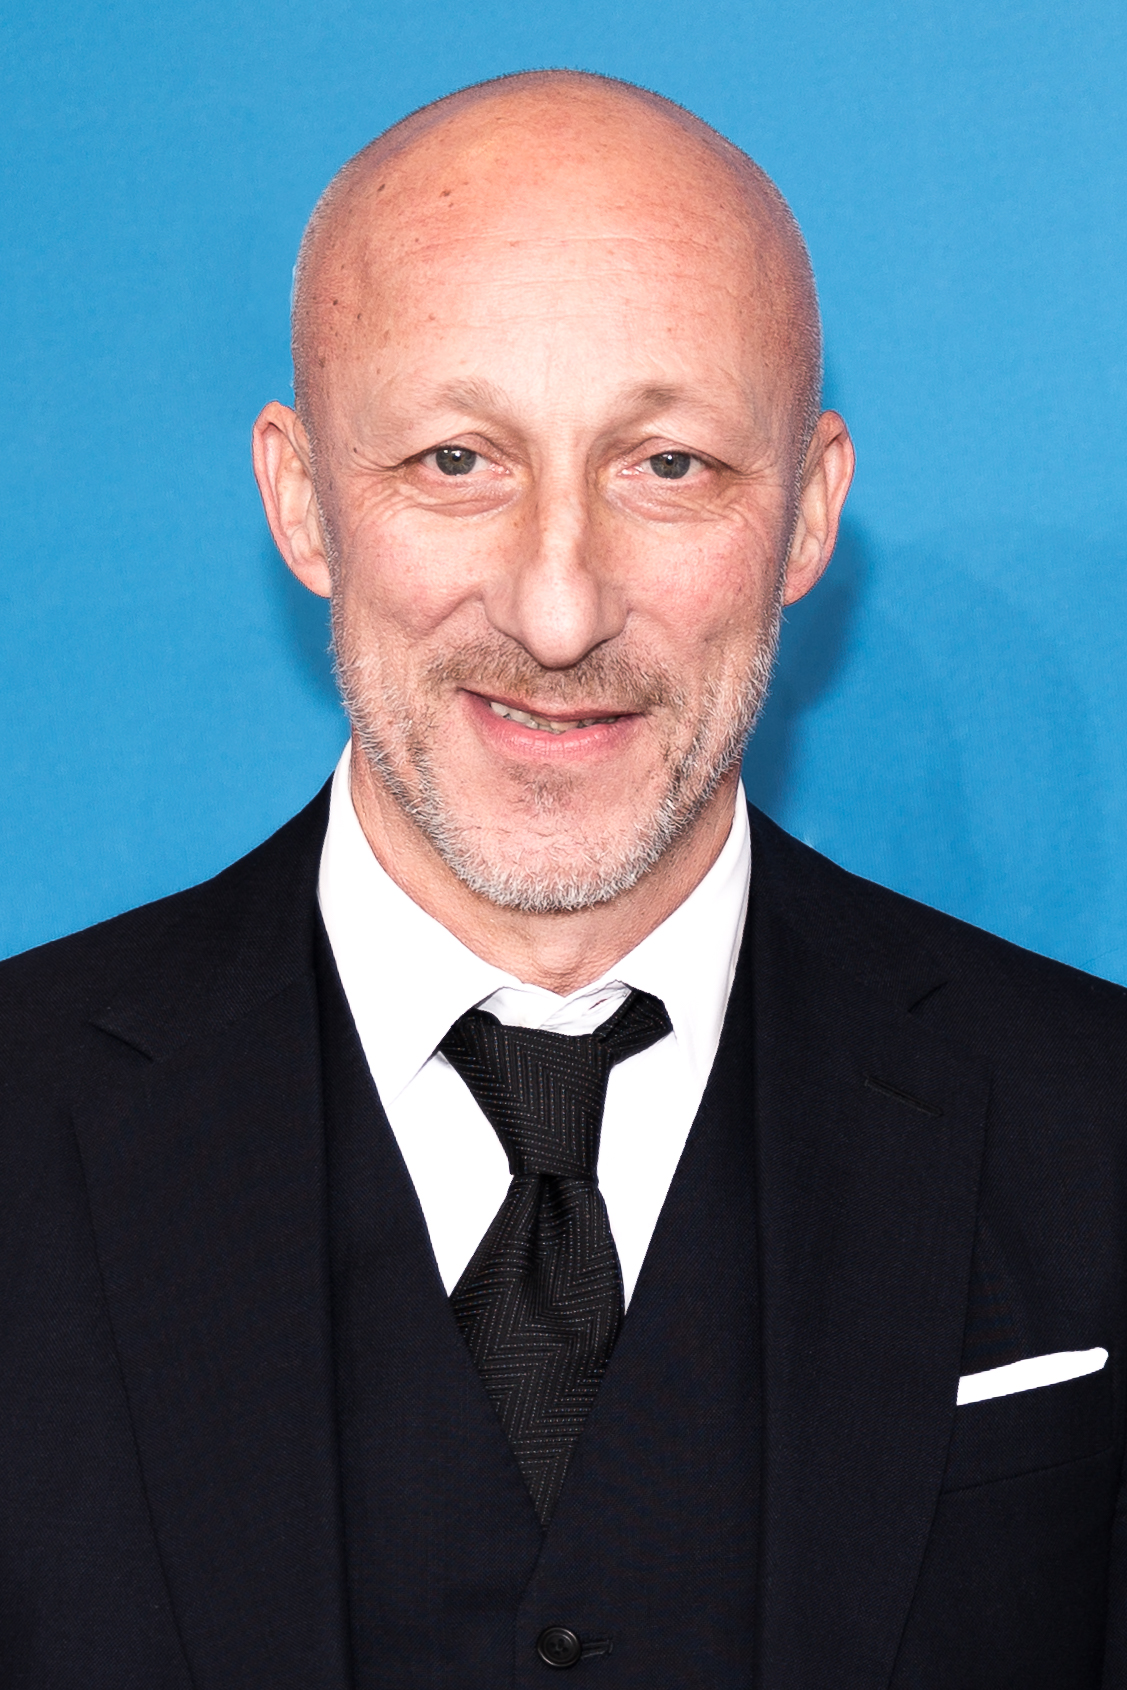 The 60-year old son of father (?) and mother(?) Oliver Hirschbiegel in 2018 photo. Oliver Hirschbiegel earned a  million dollar salary - leaving the net worth at 3 million in 2018